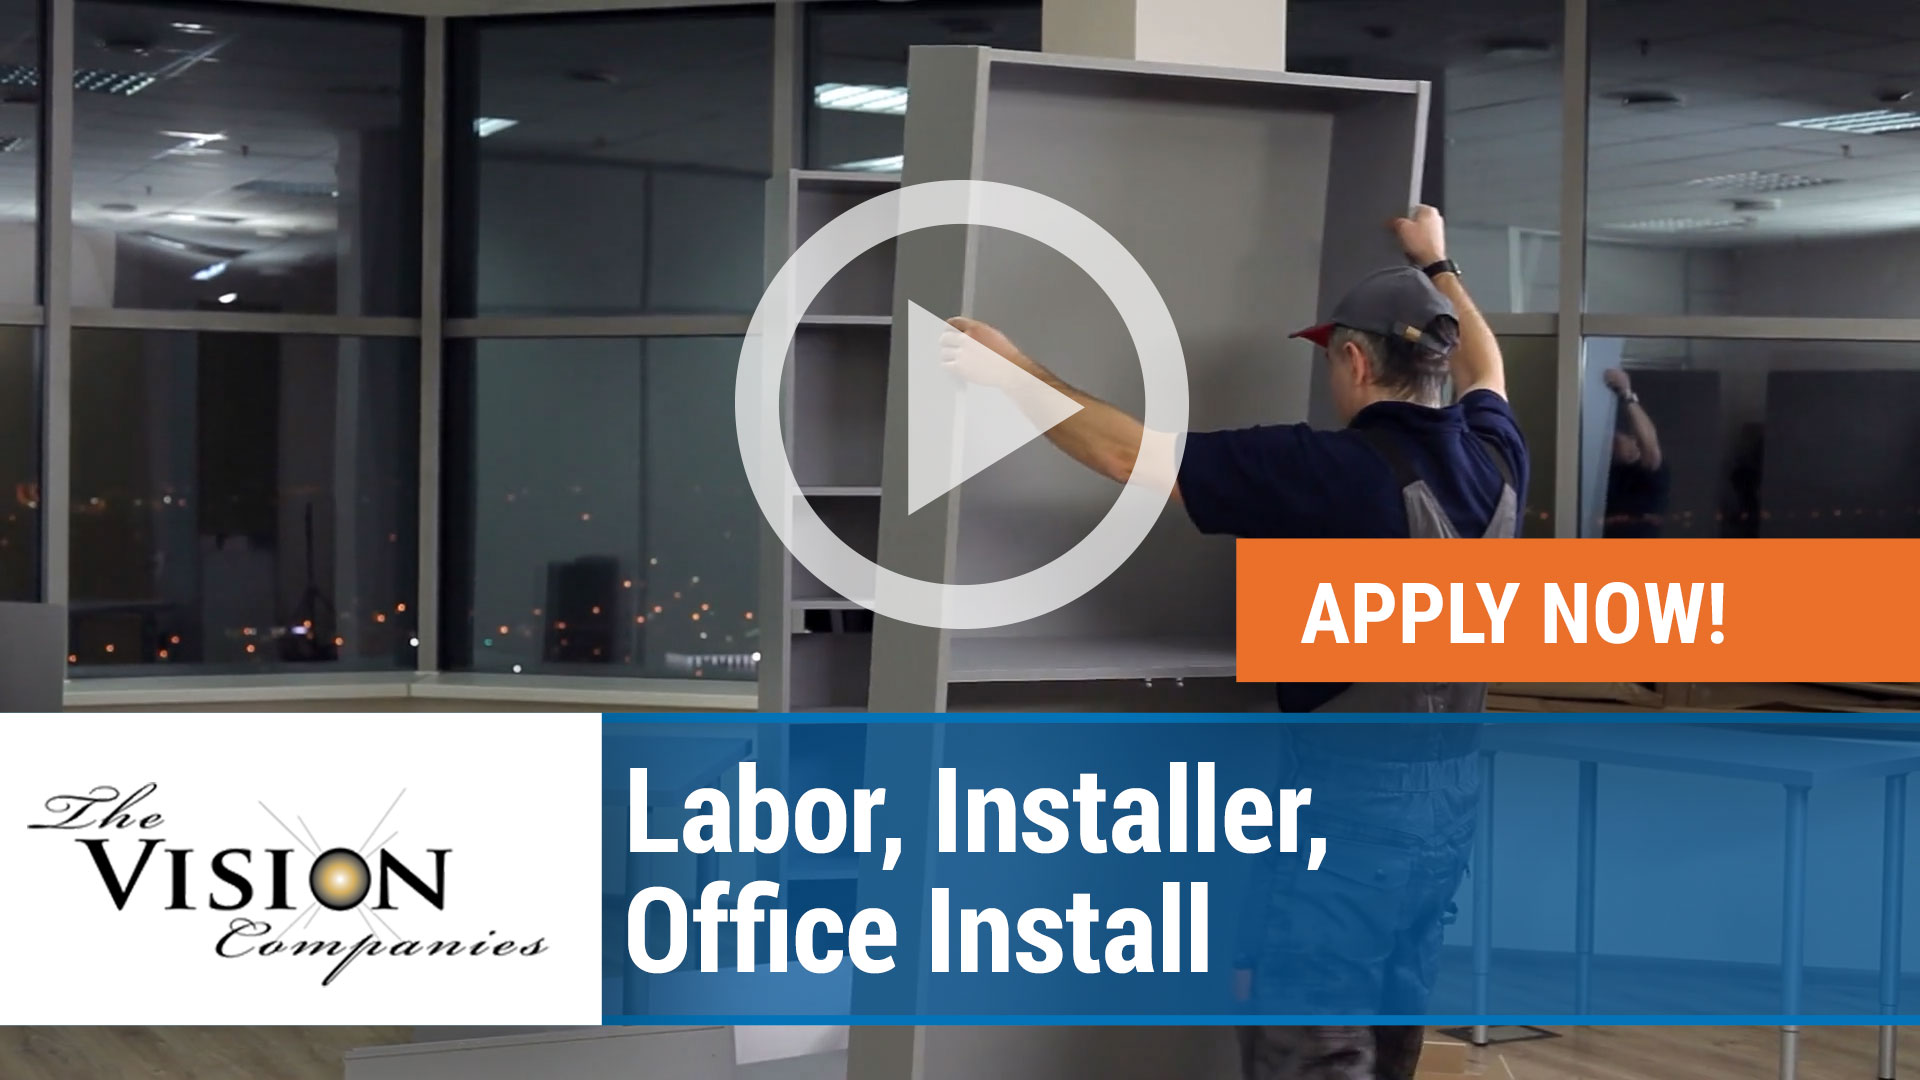 Watch our careers video for available job opening Labor, Installer, Office Install in Minneapolis, Minnesota